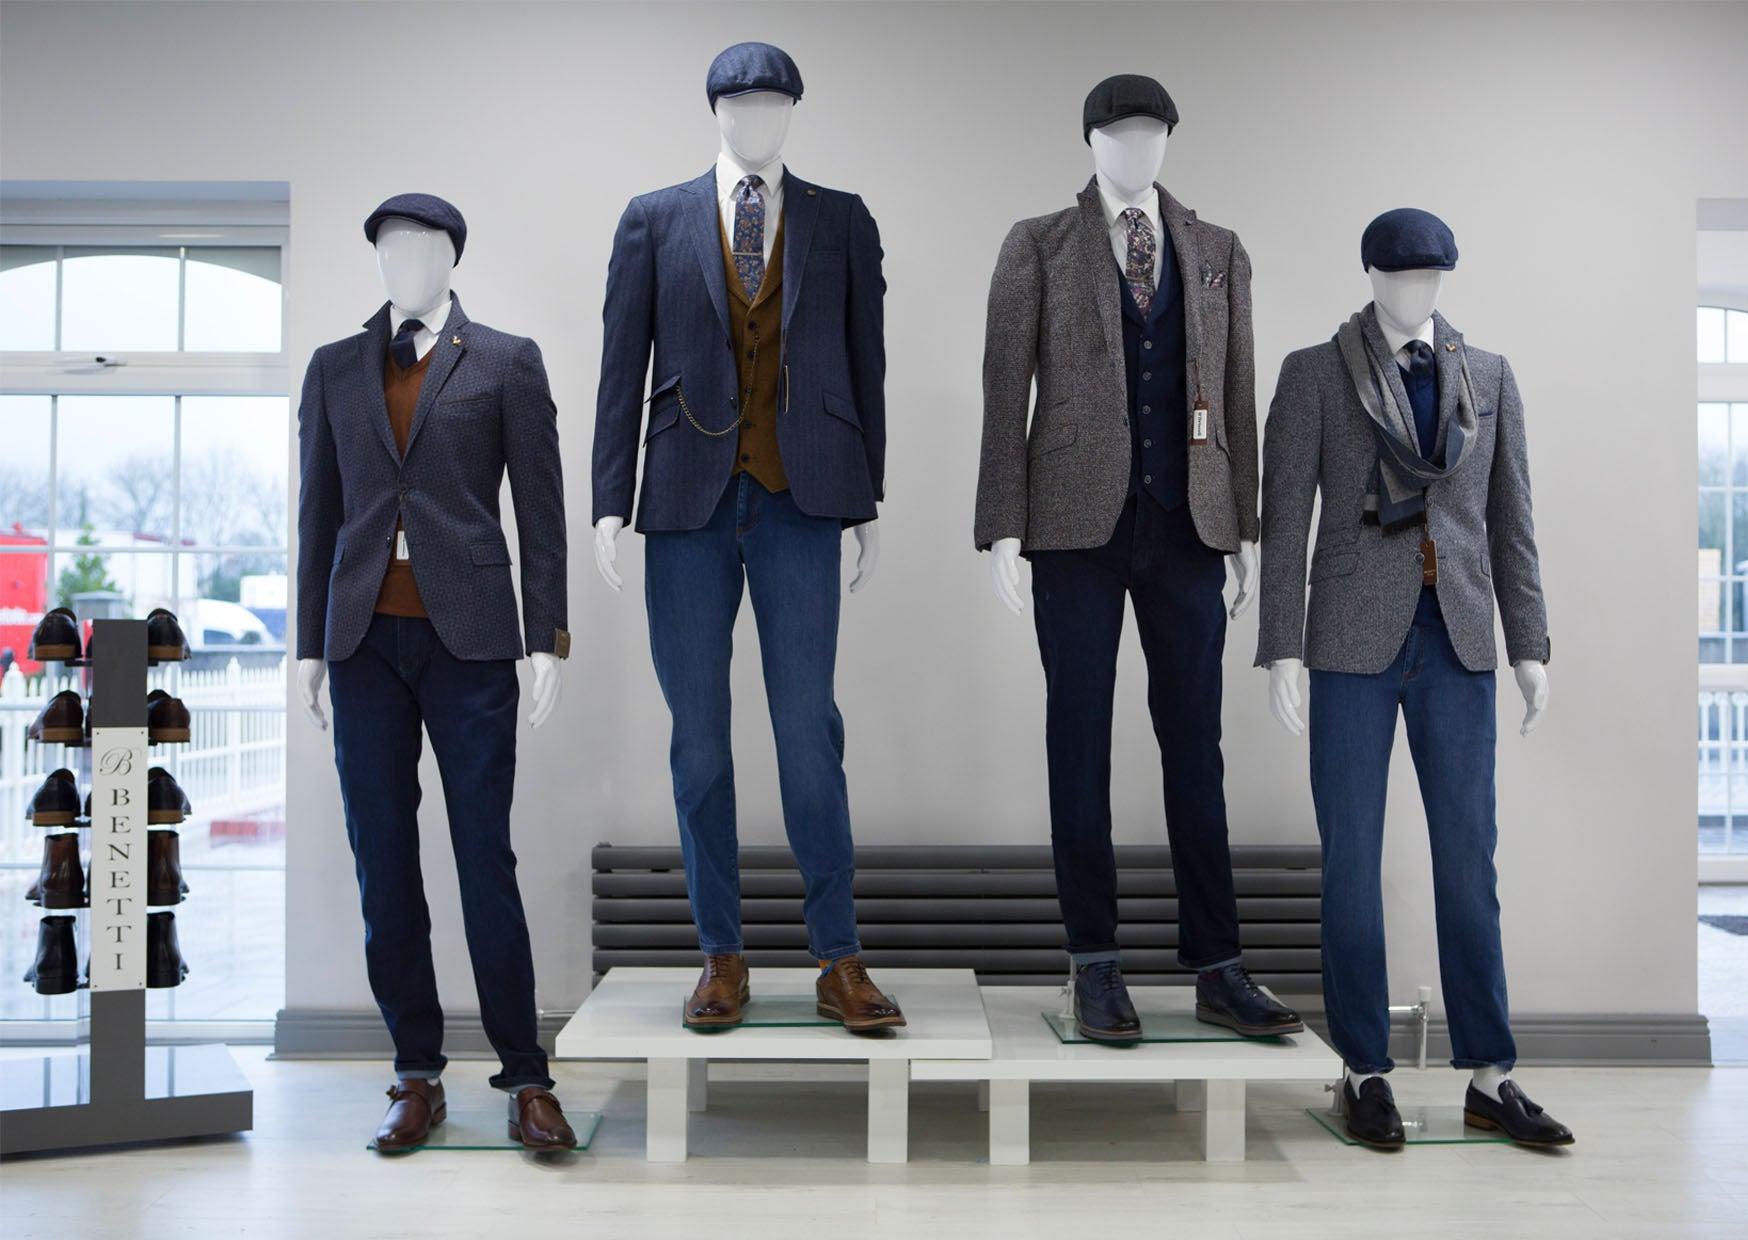 Benetti Menswear, Menswear Ireland, Benetti showroom, Official Launch, Ballymahon, Model, suits, shirt, ties, Benetti, Lifestyle